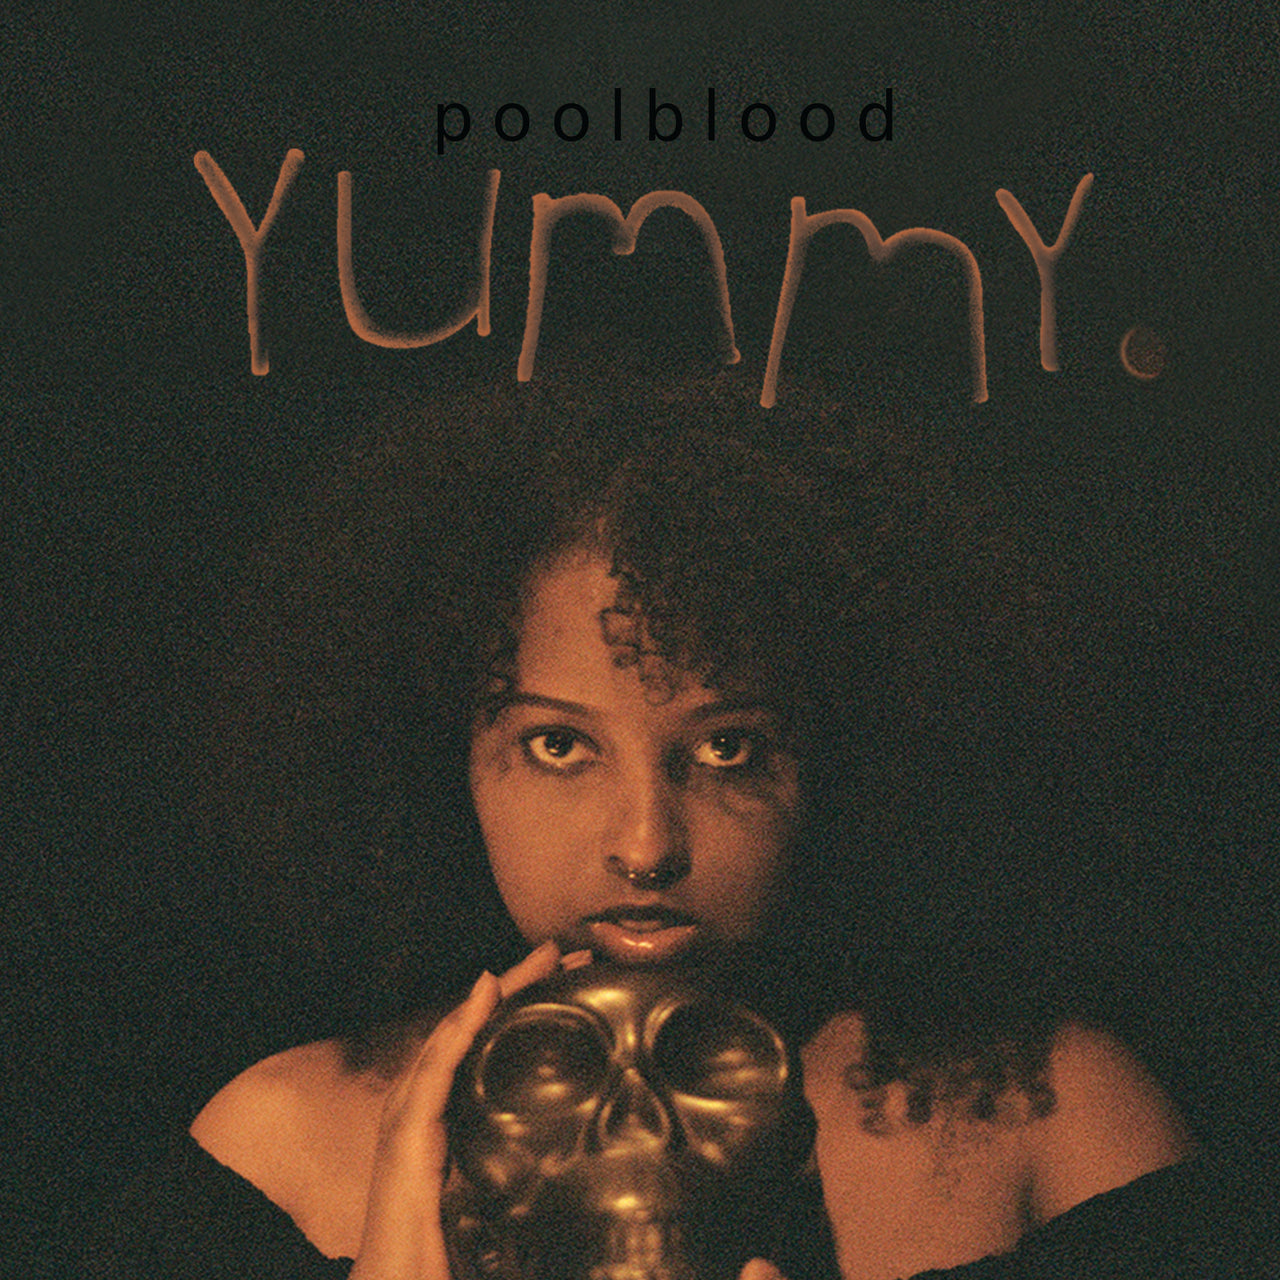 Poolblood - Yummy LP